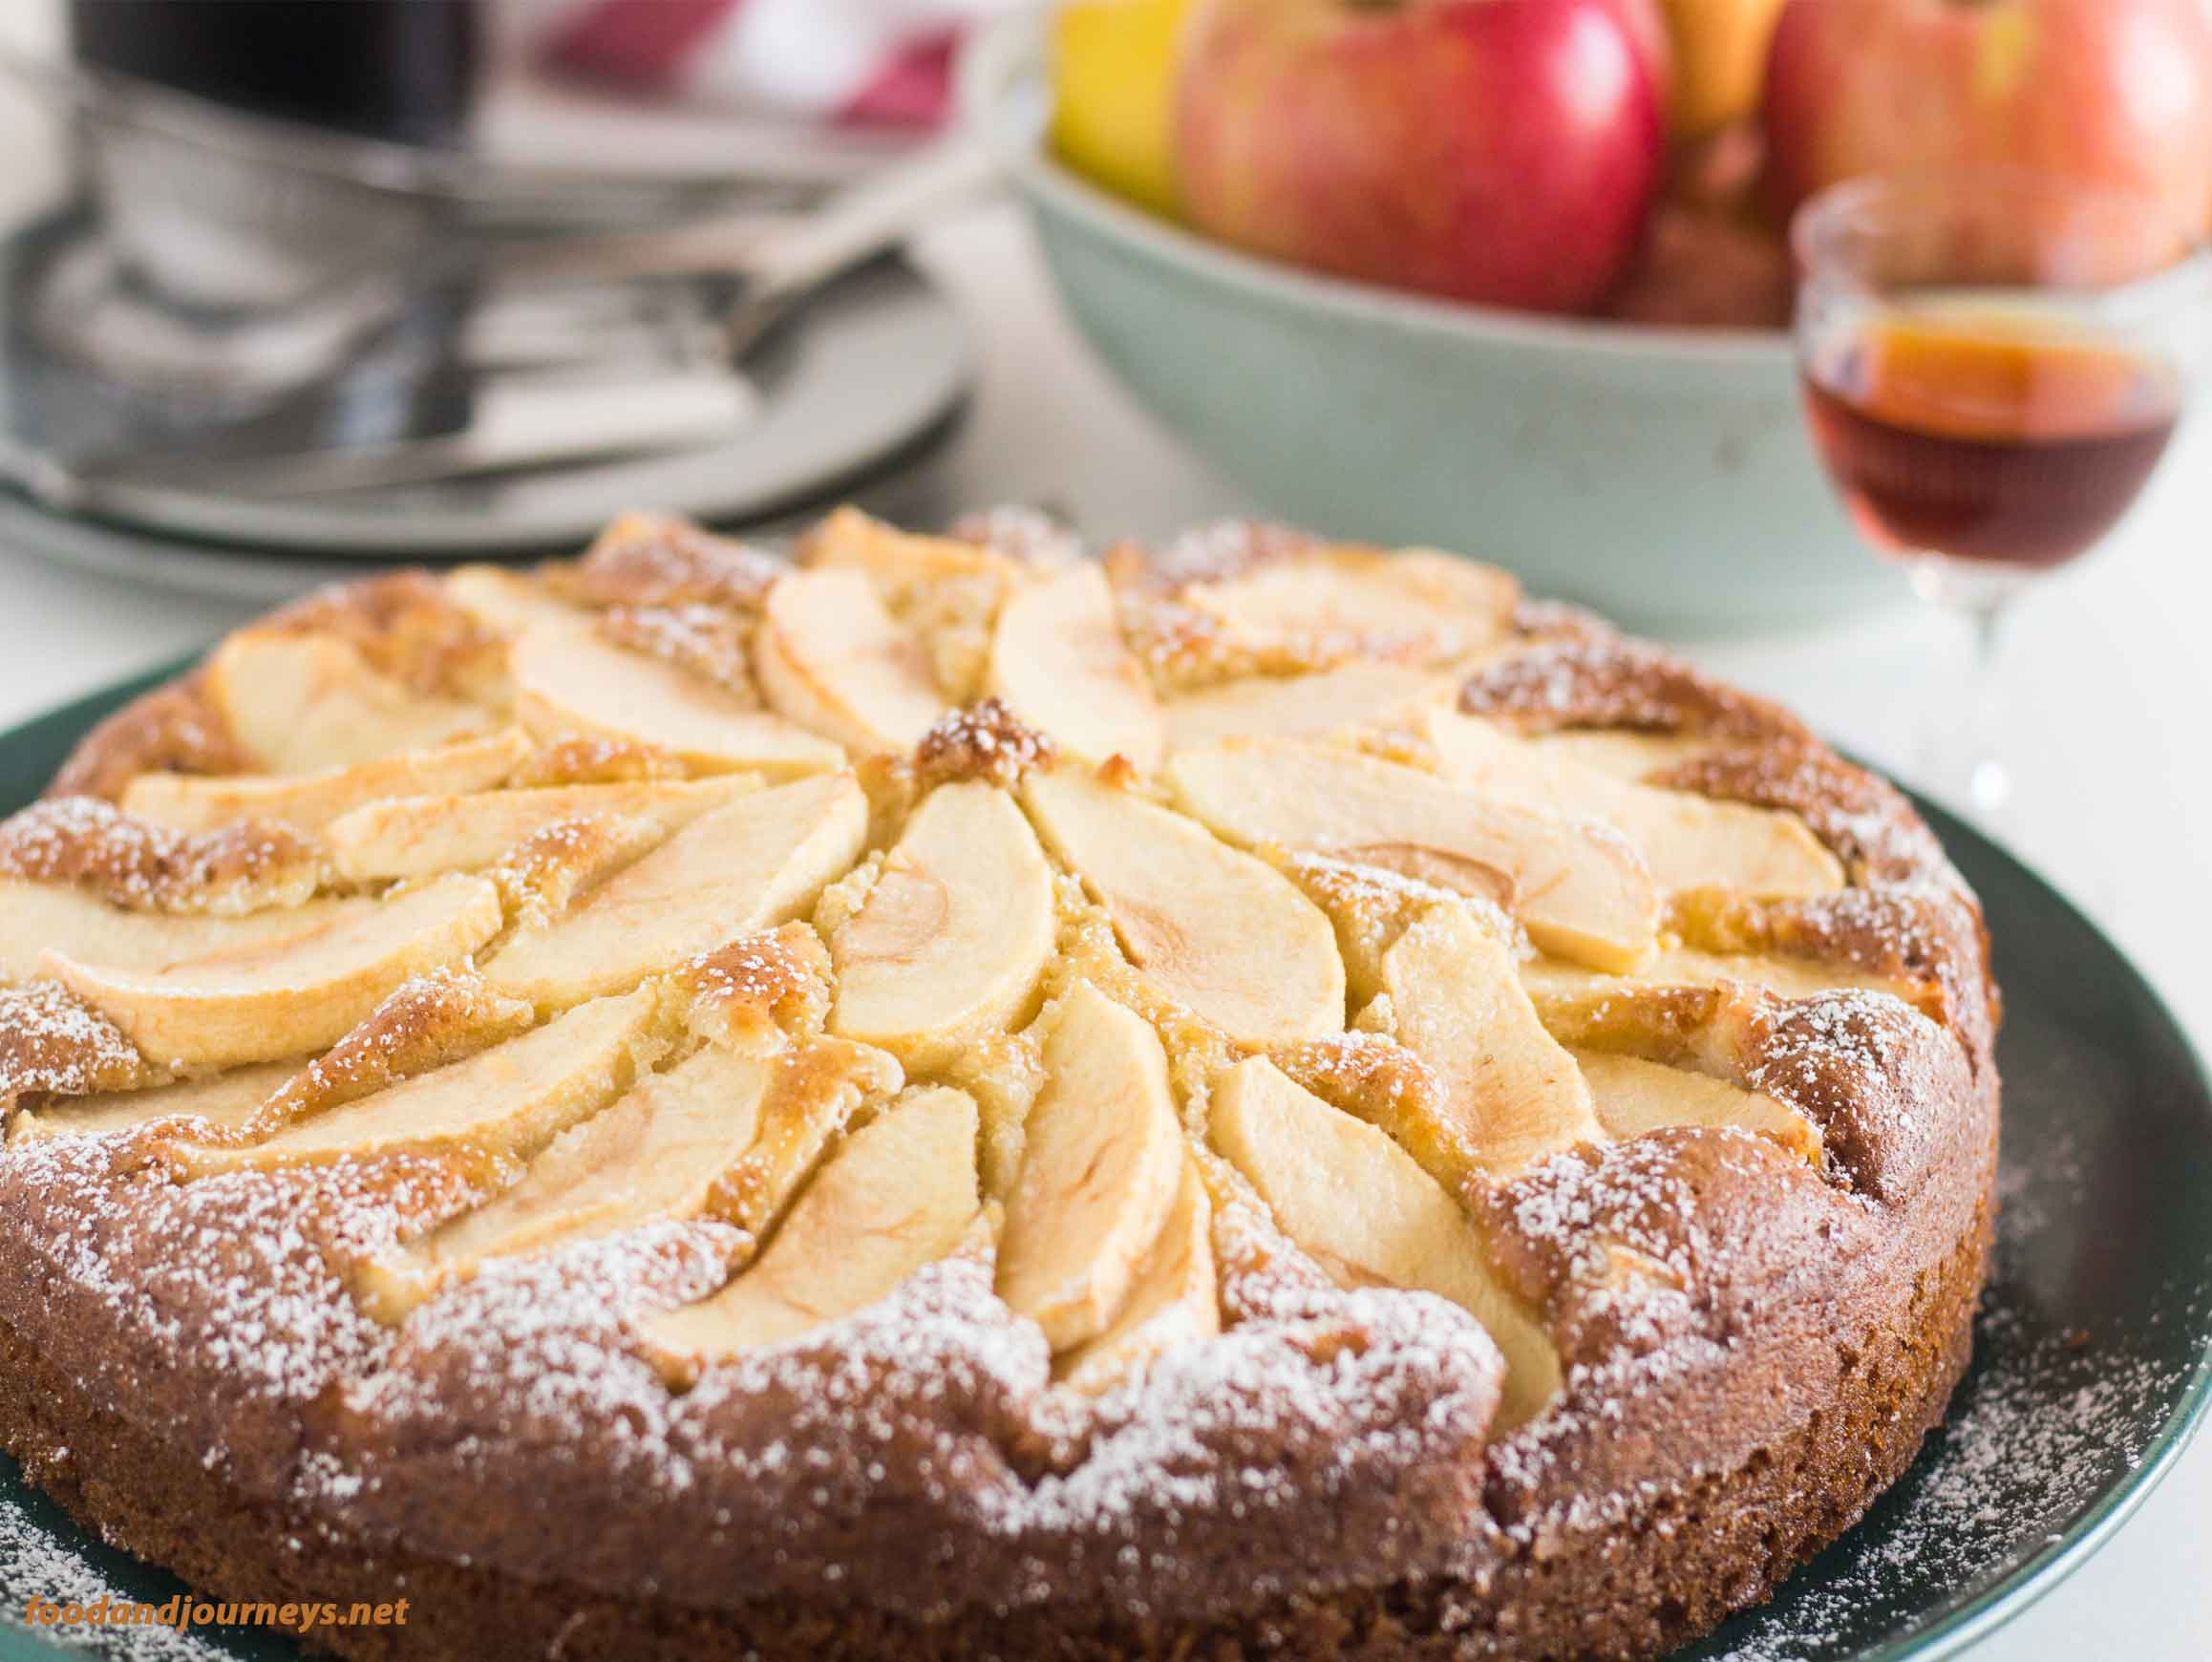 Side shot of Tuscan Apple Cake showing the apples on top|foodandjourneys.net